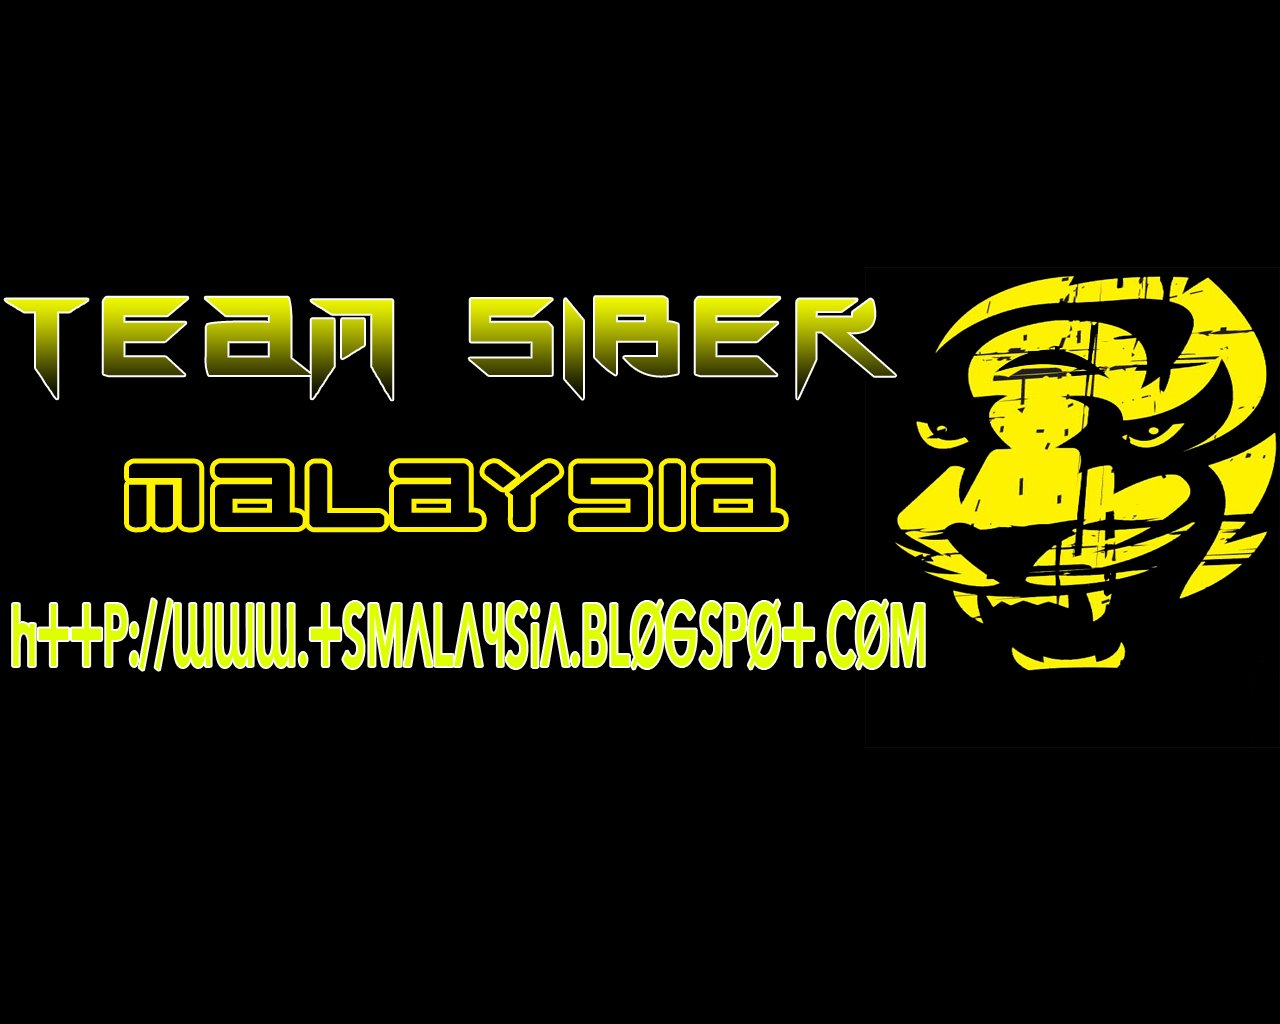 web official Team Siber= www.teamsiber.com